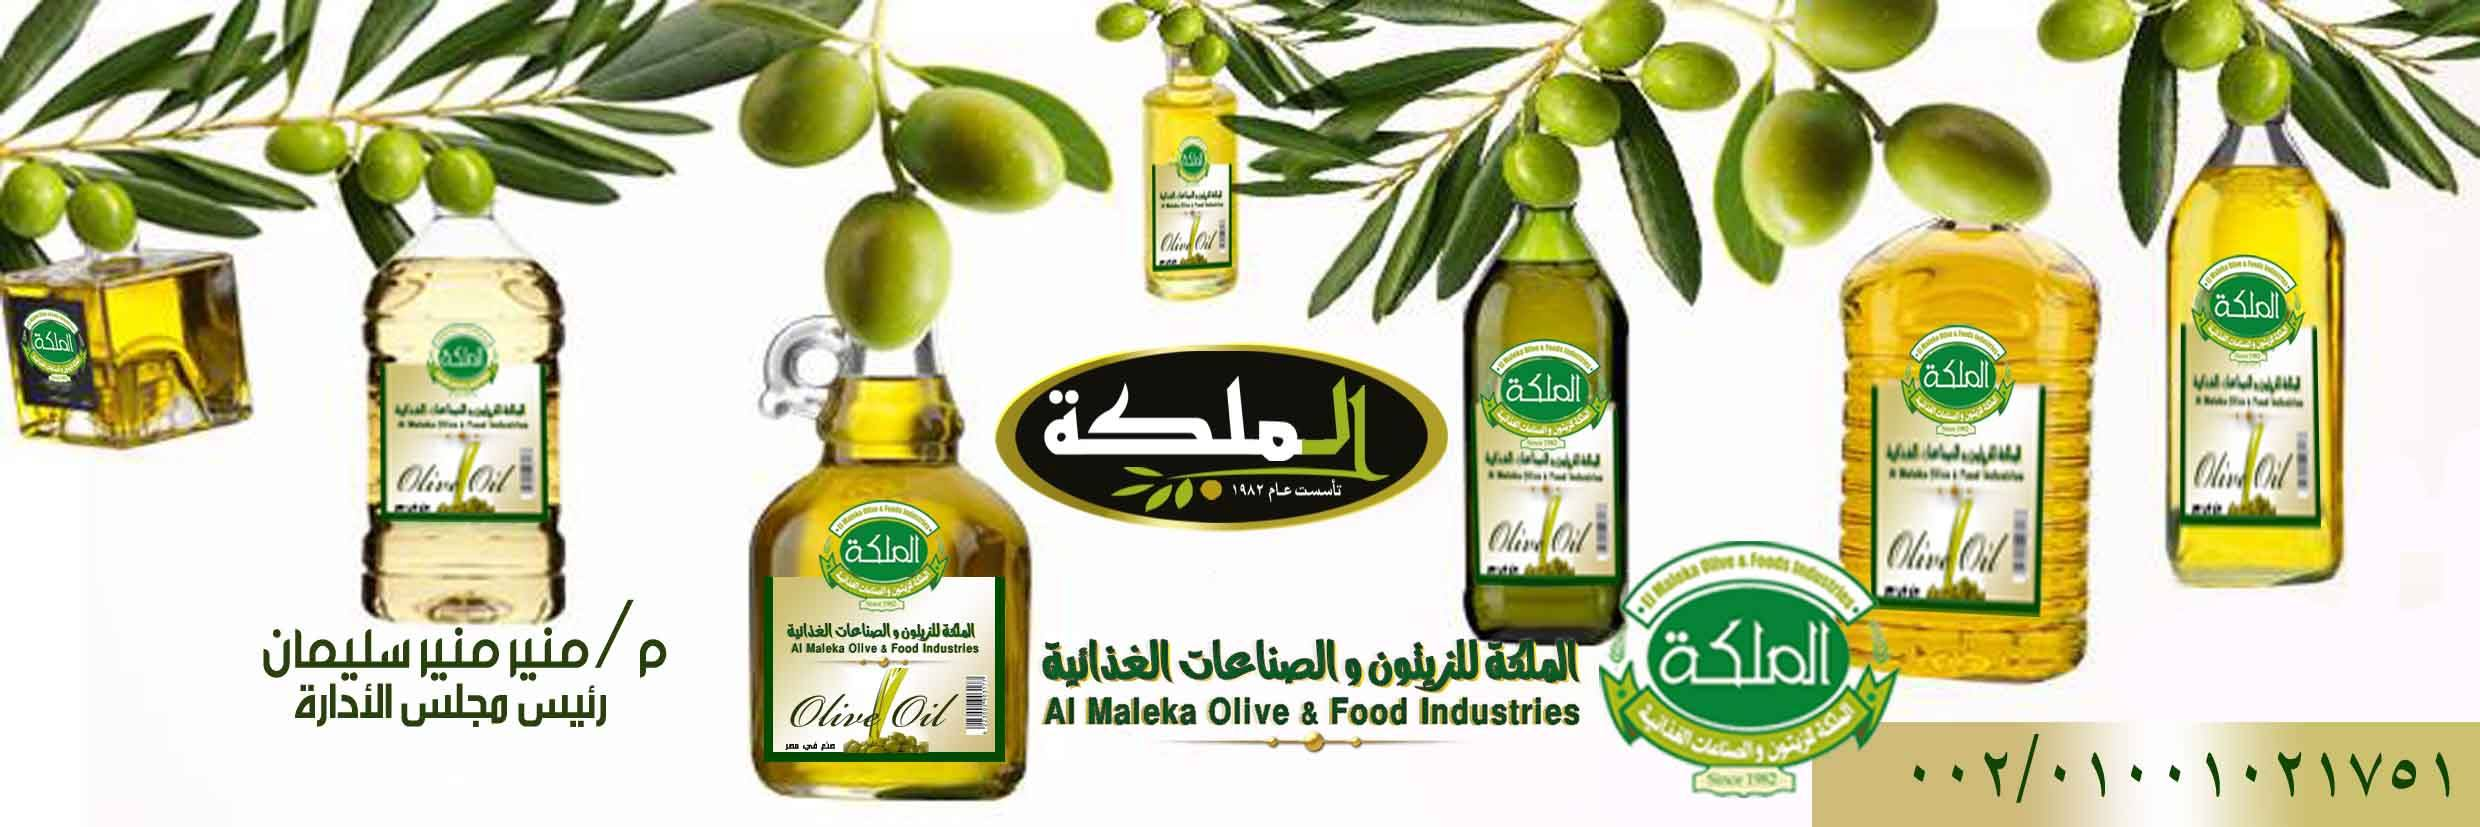 El-Maleka for Olives & Food Industries Co